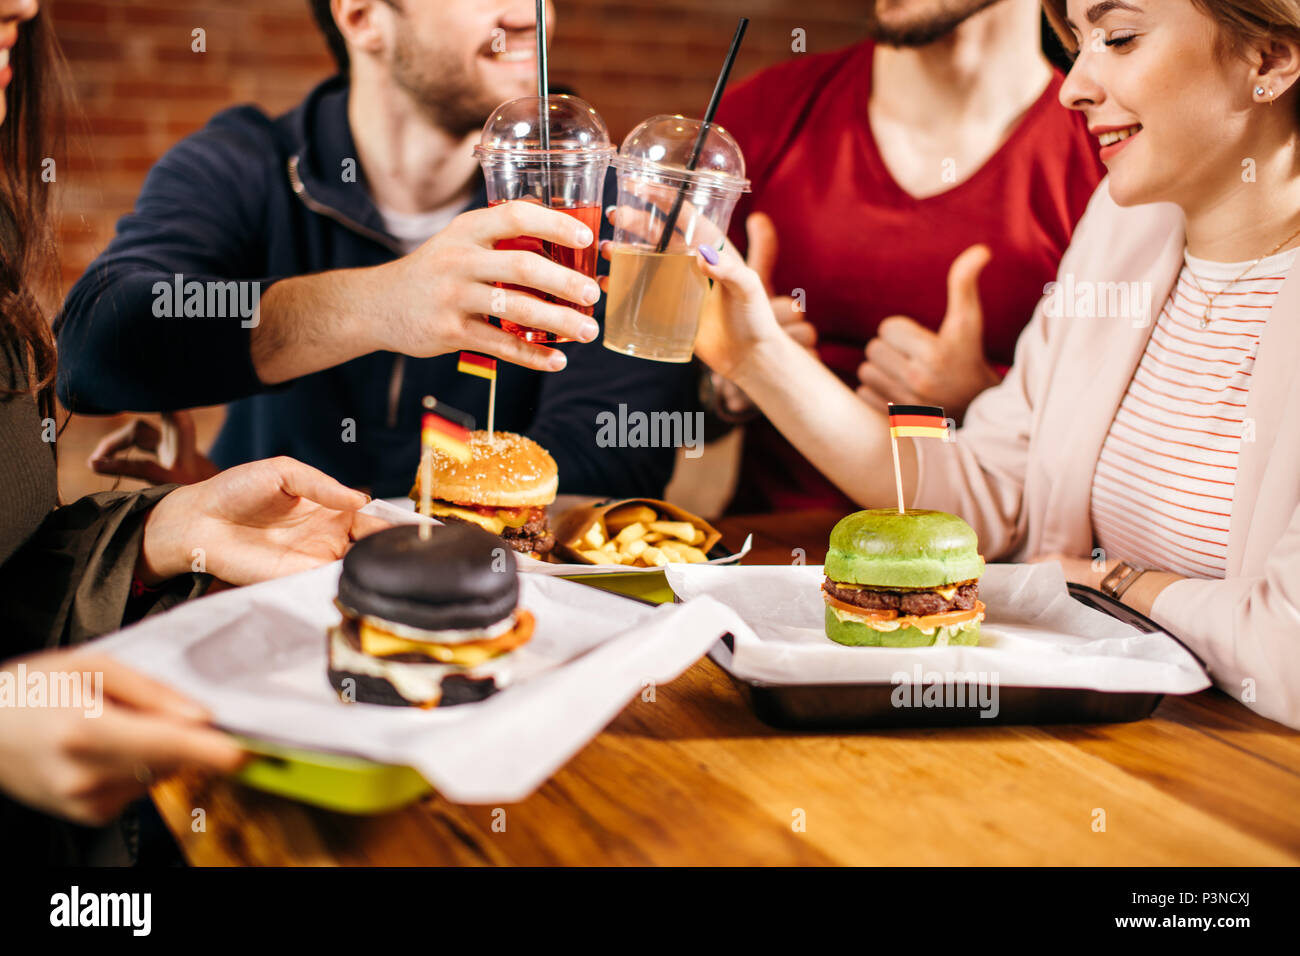 Leisure, celebration, Fastfood consumption, people and holidays concept. - Stock Image